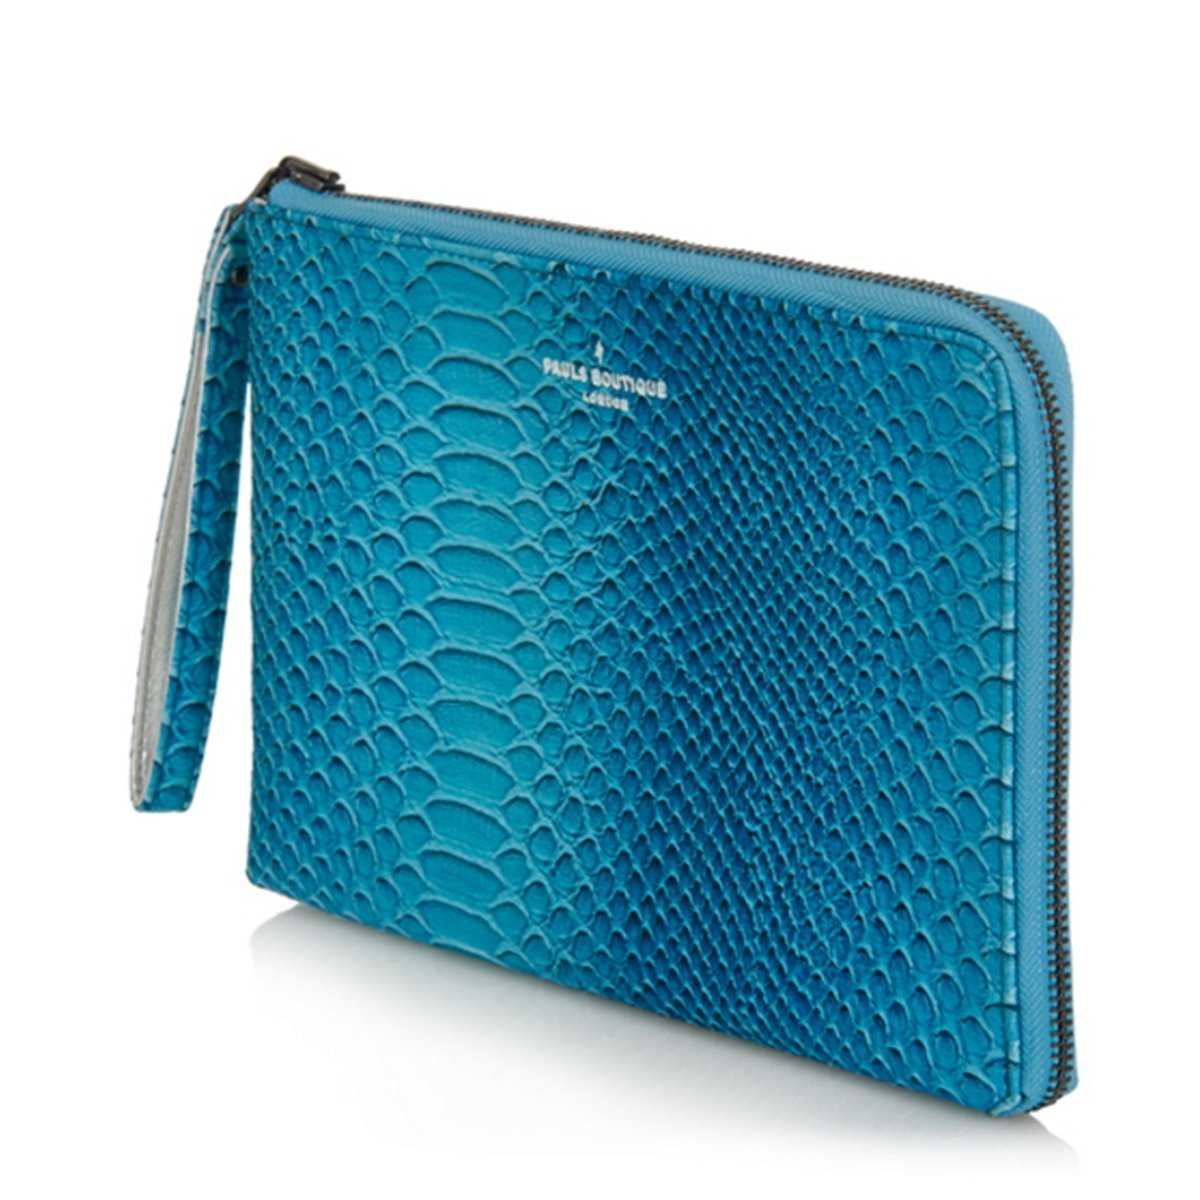 【PAULS BOUTIQUE】16新作★クラッチバッグ★MINI FLEUR TEAL